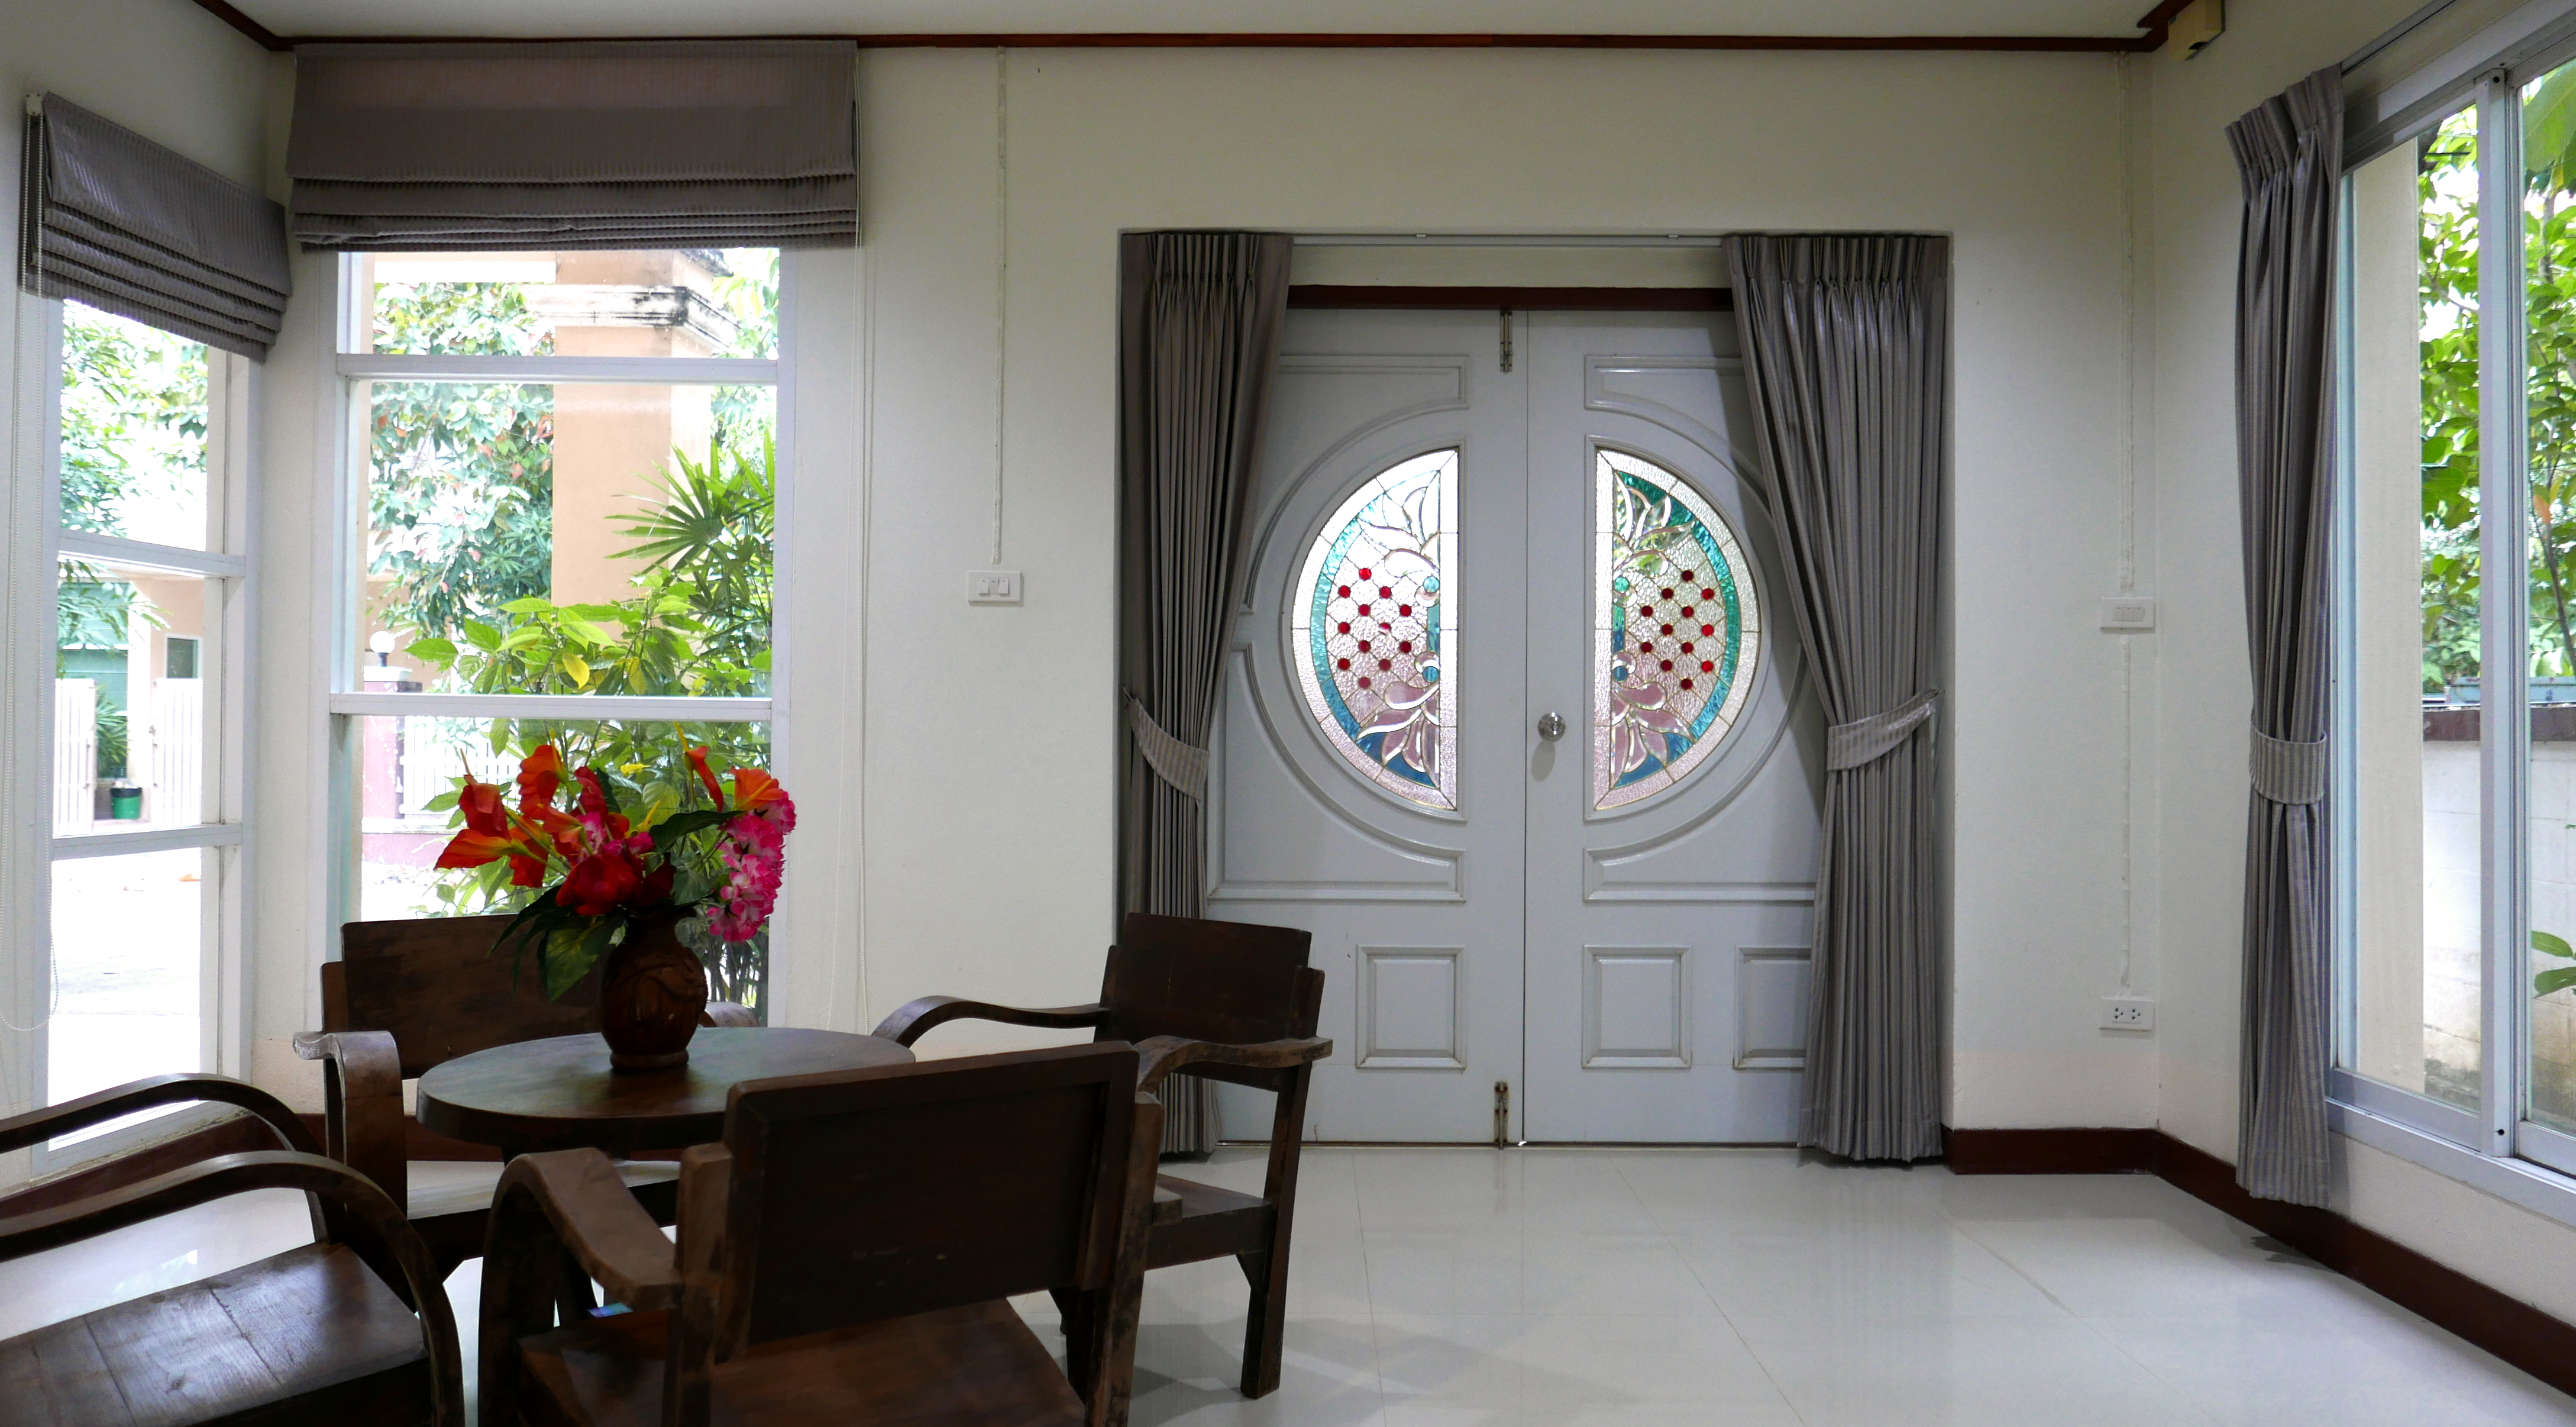 Kamalar palace dining room 2